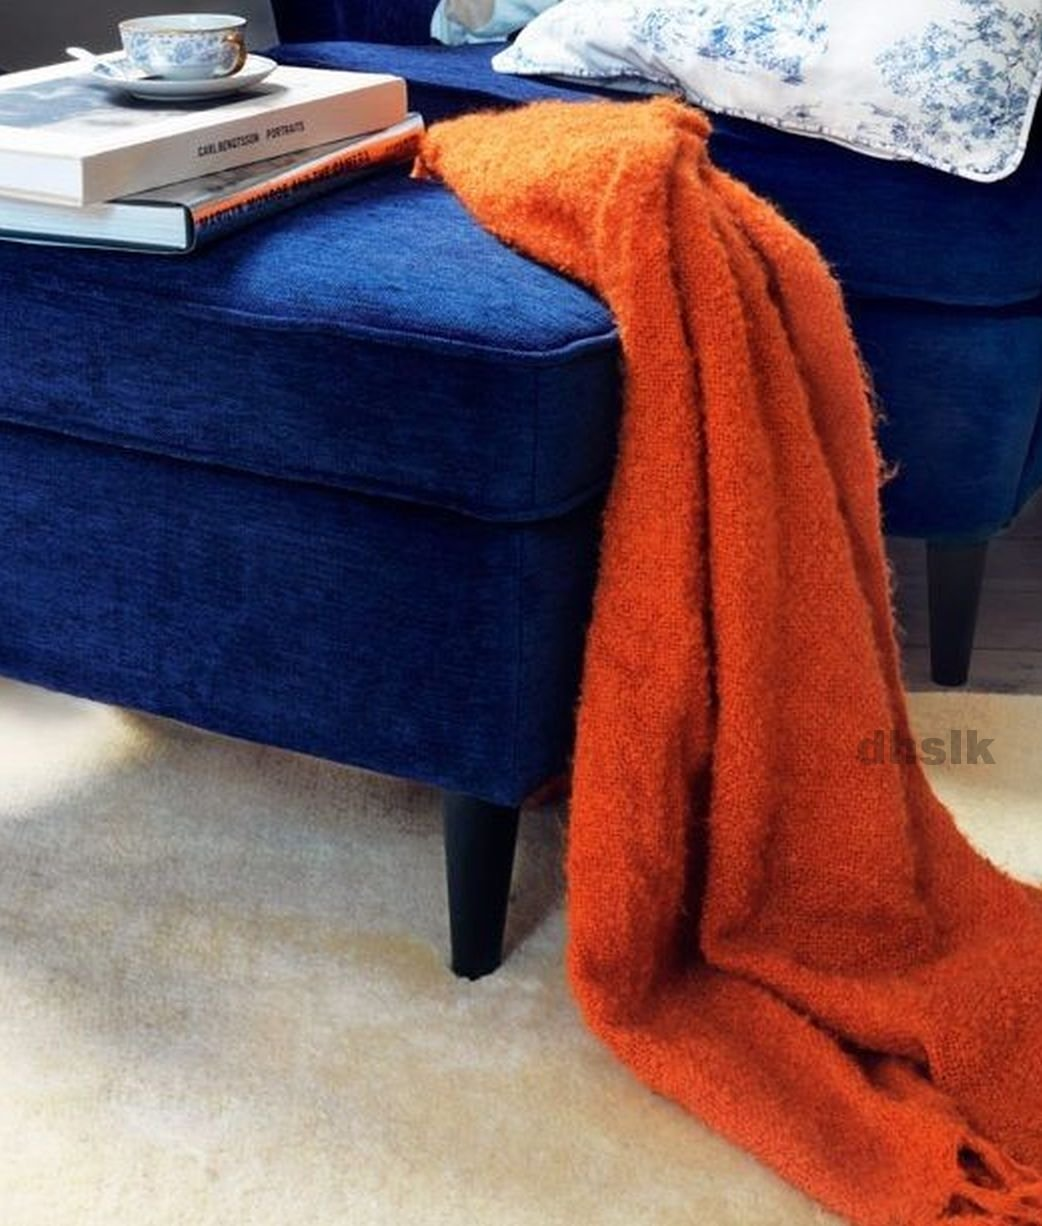 width of a sofa bed air mattress for rv sleeper ikea ritva orange throw blanket afghan soft mohair blend ...